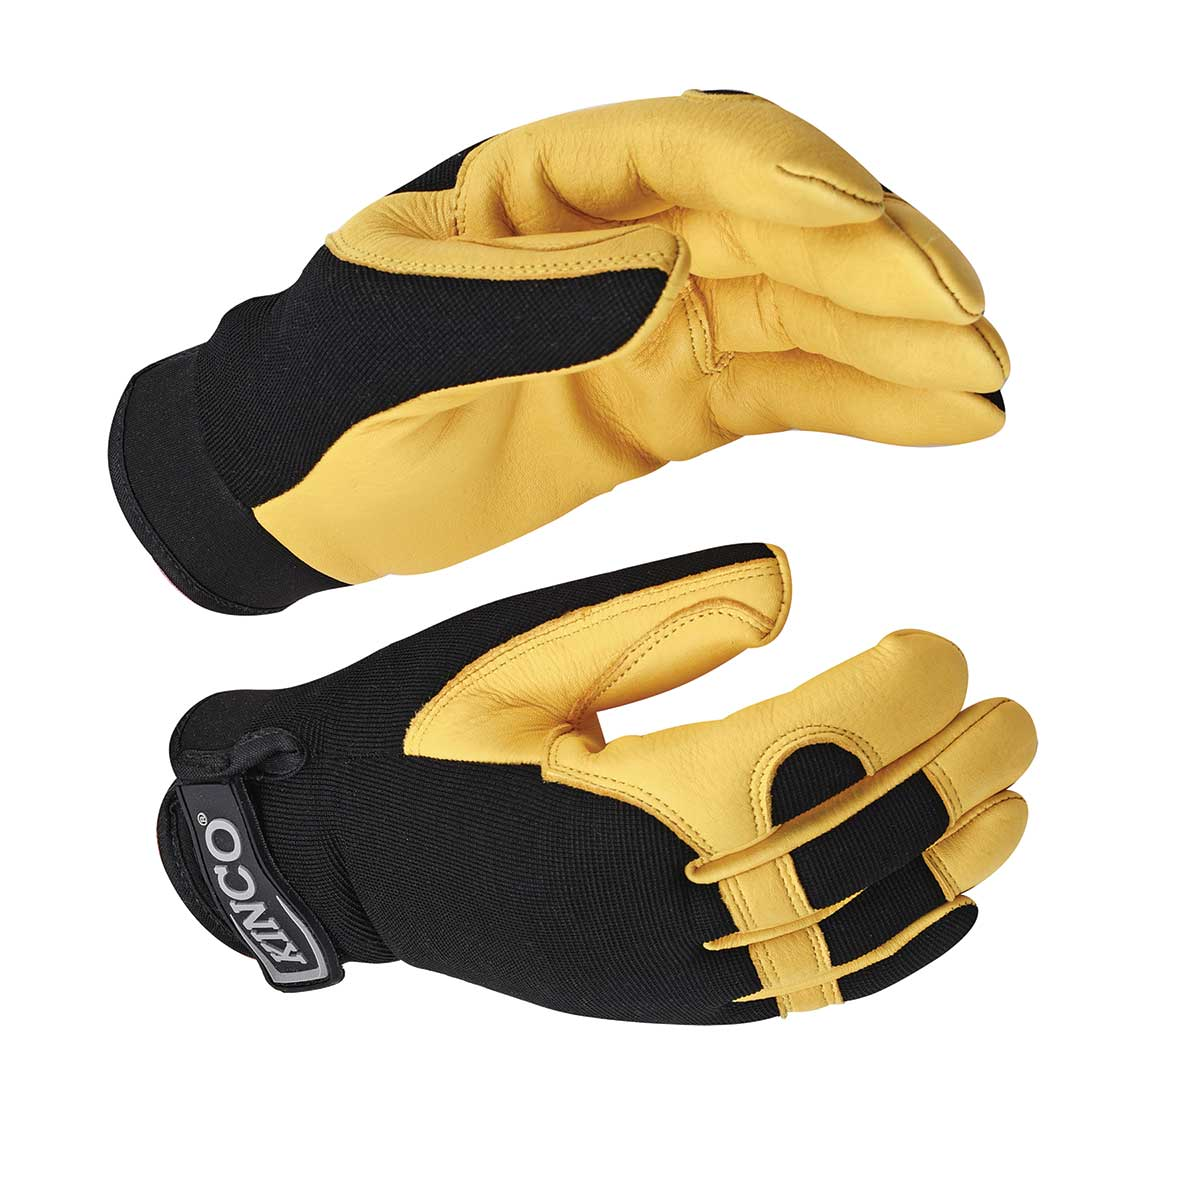 KincoPro™ Grain Deerskin & Synthetic Hybrid Gloves with Pull-Strap